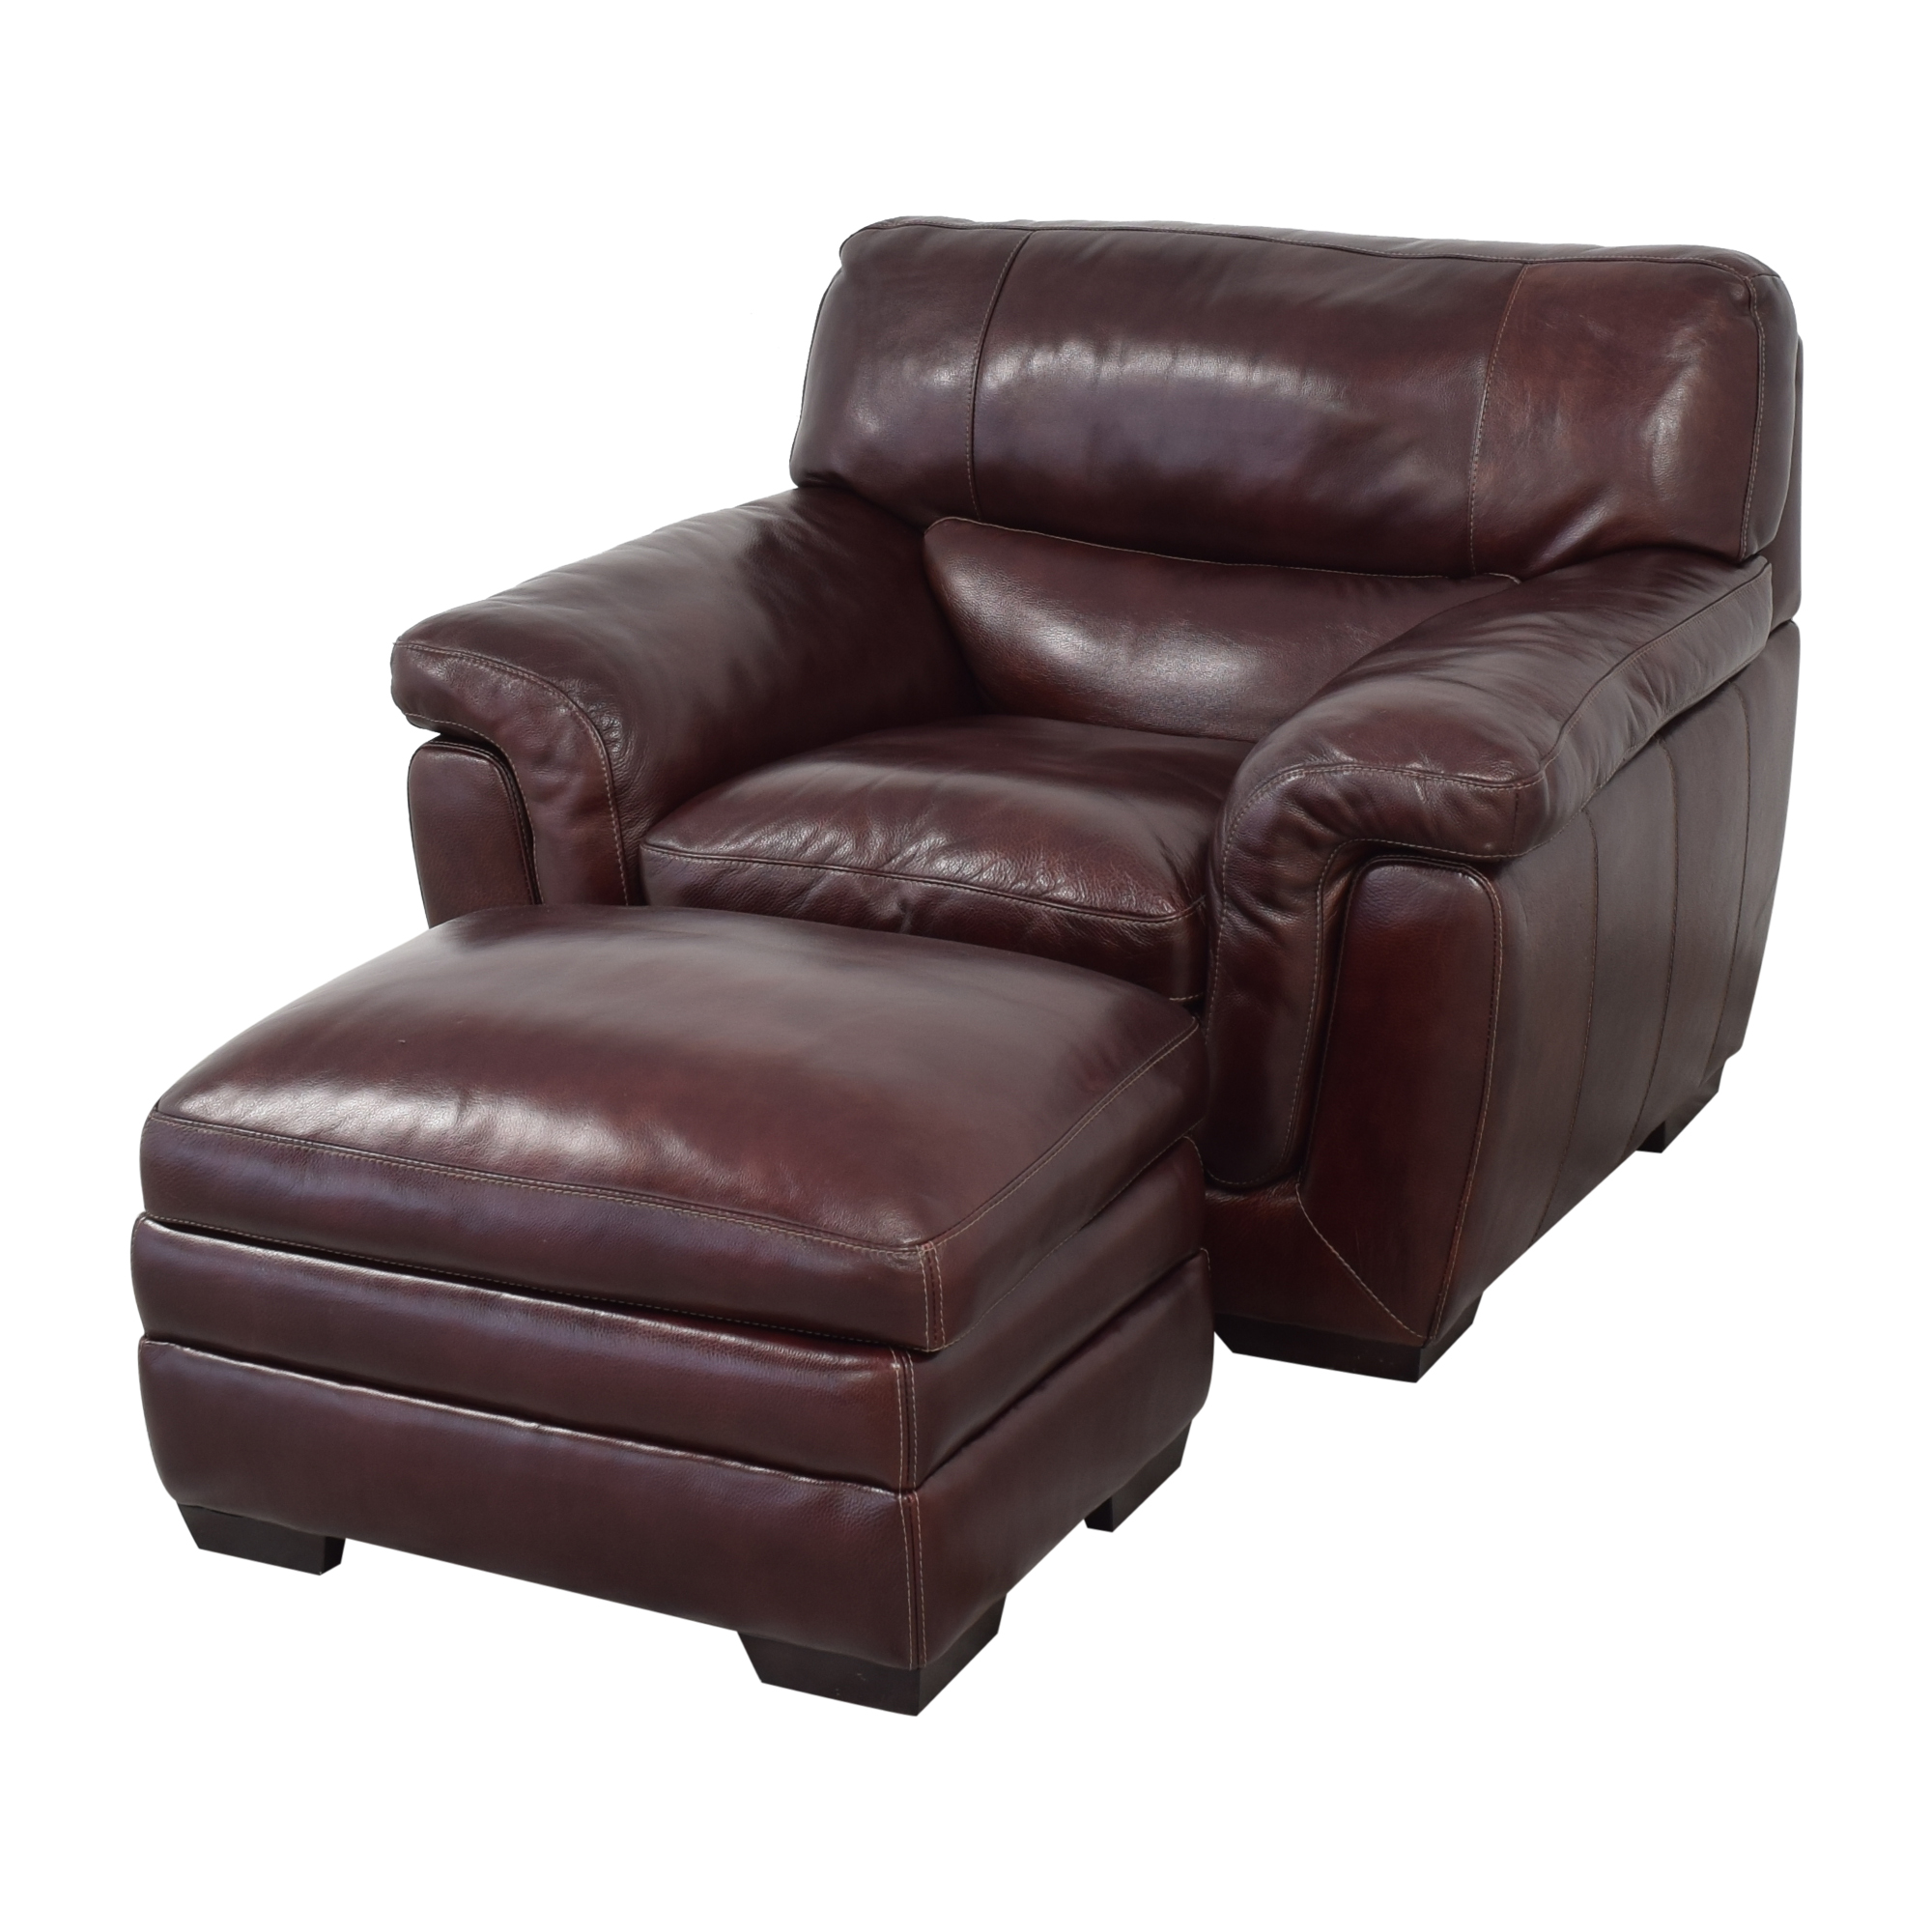 shop Raymour & Flanigan Raymour & Flanigan Lounge Chair and Ottoman online